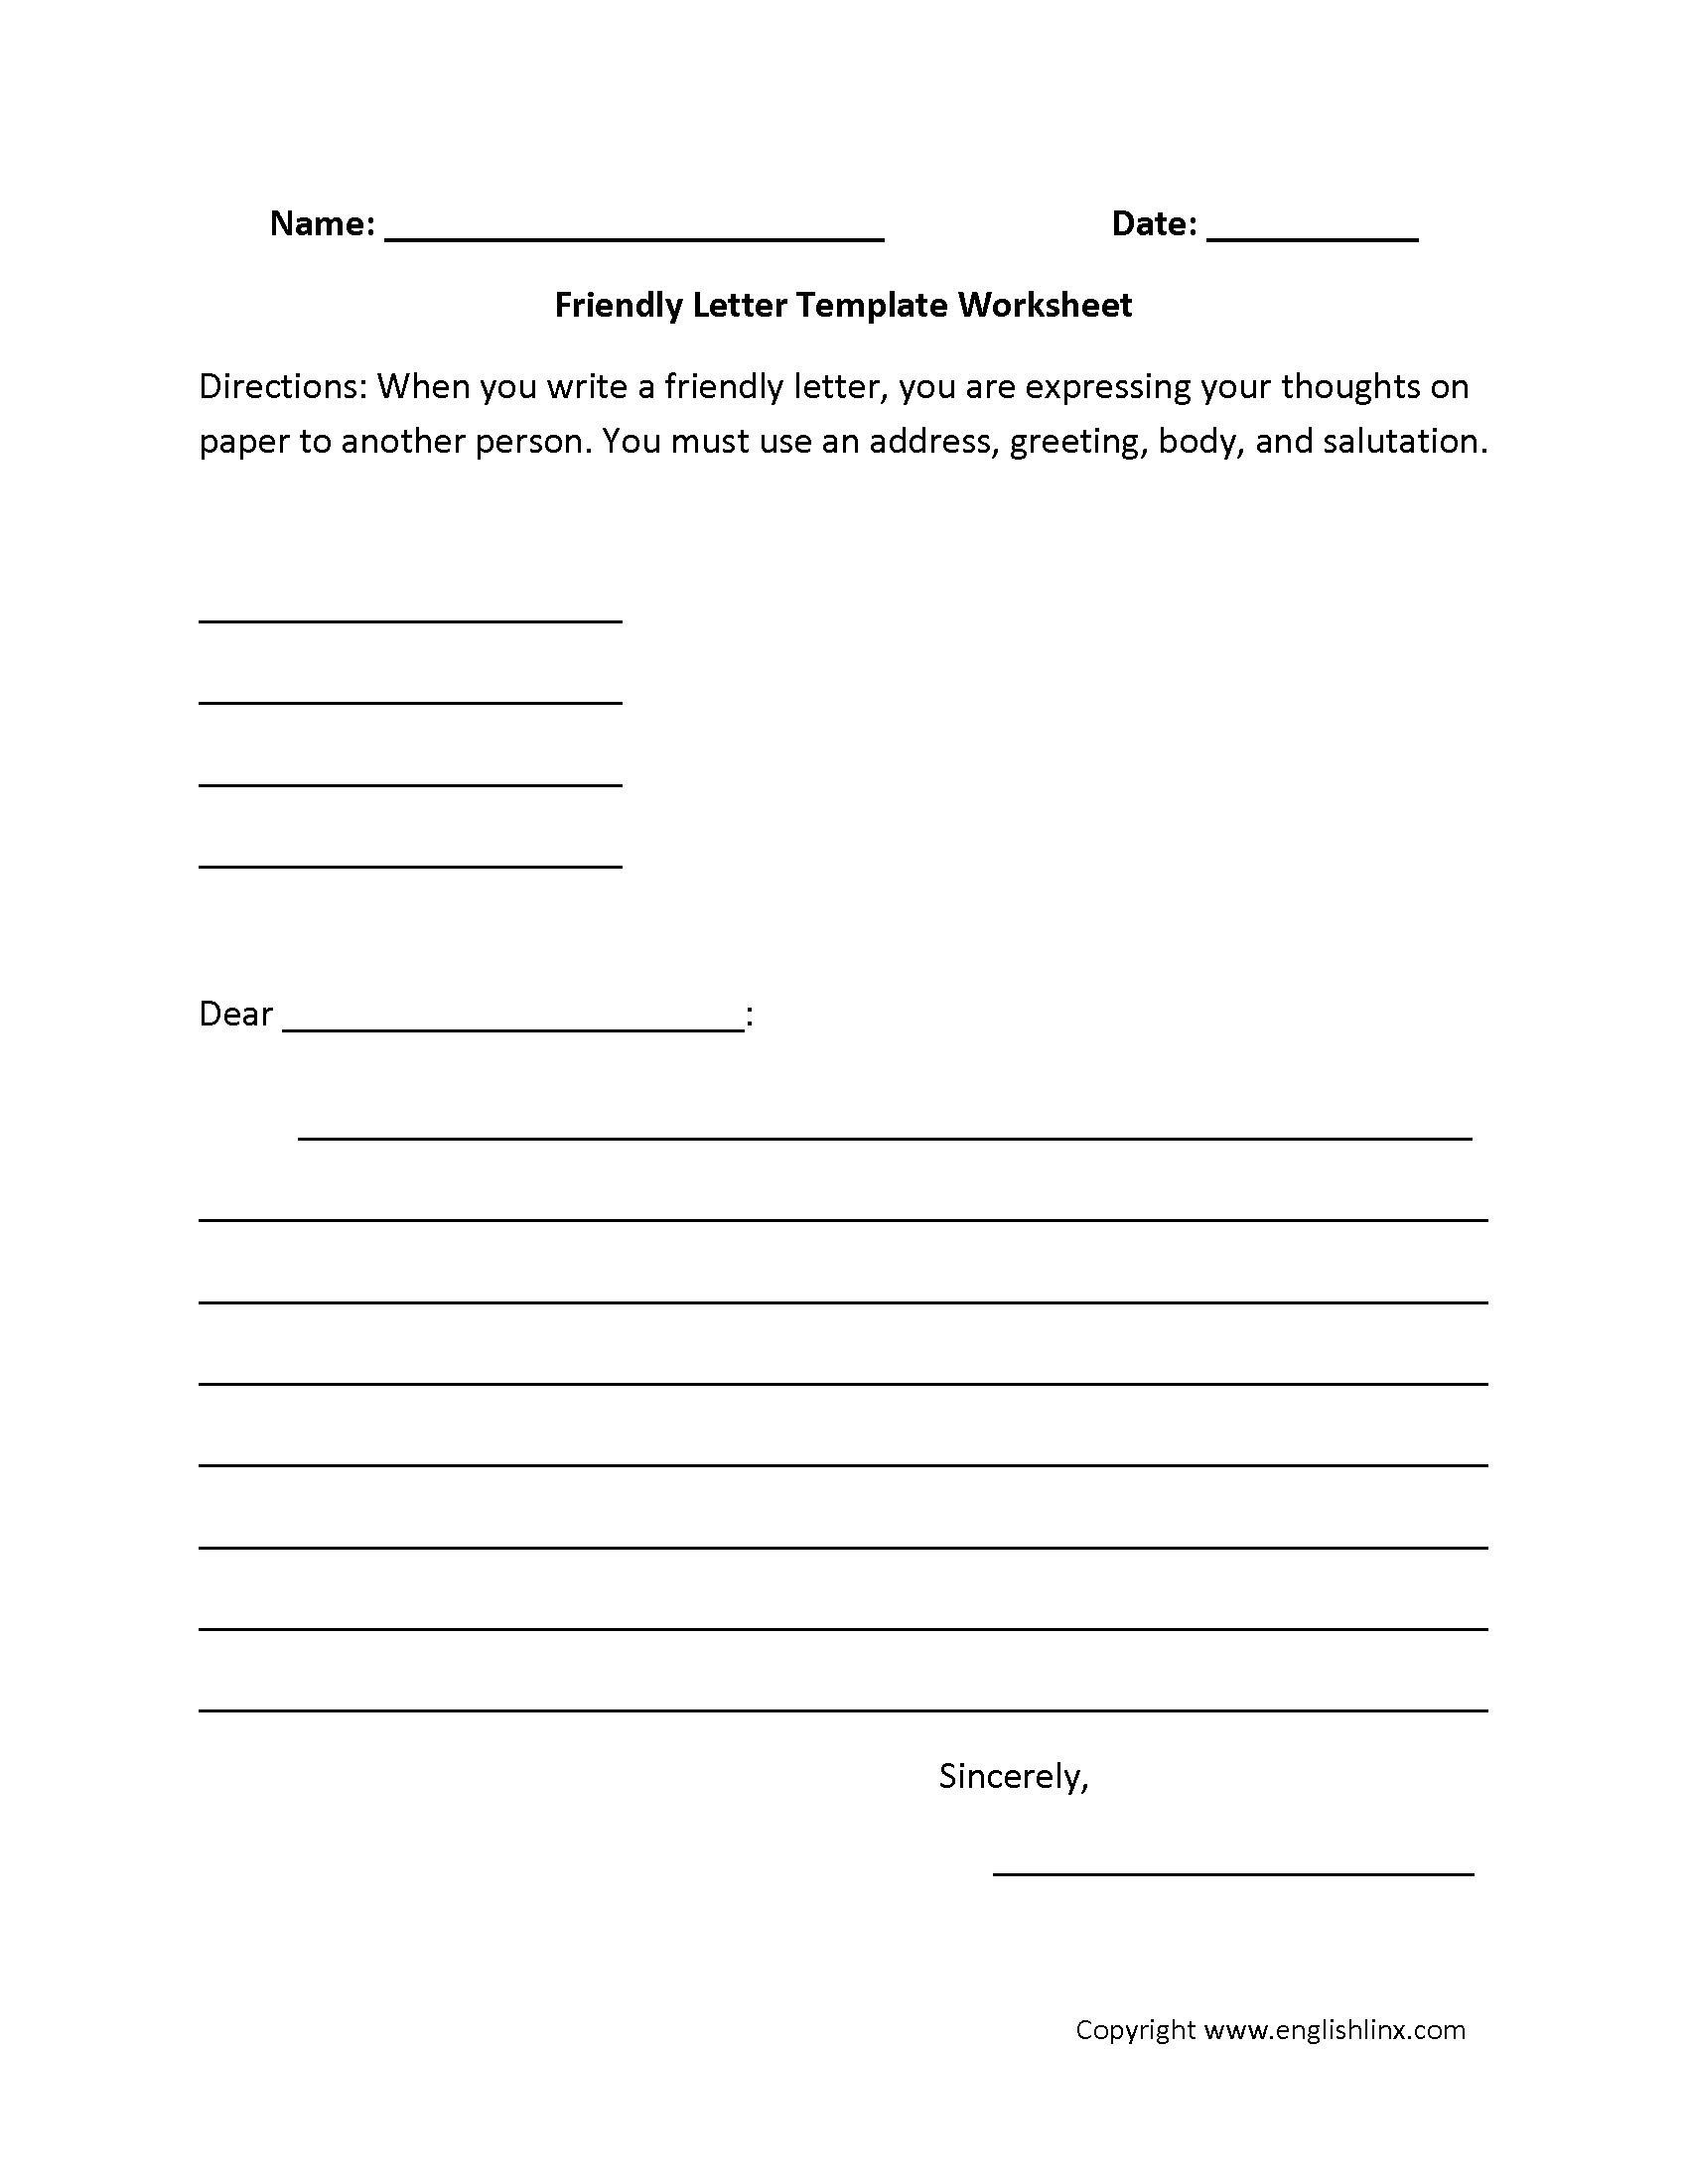 Friendly Letter Writing Worksheets  Classroom Items